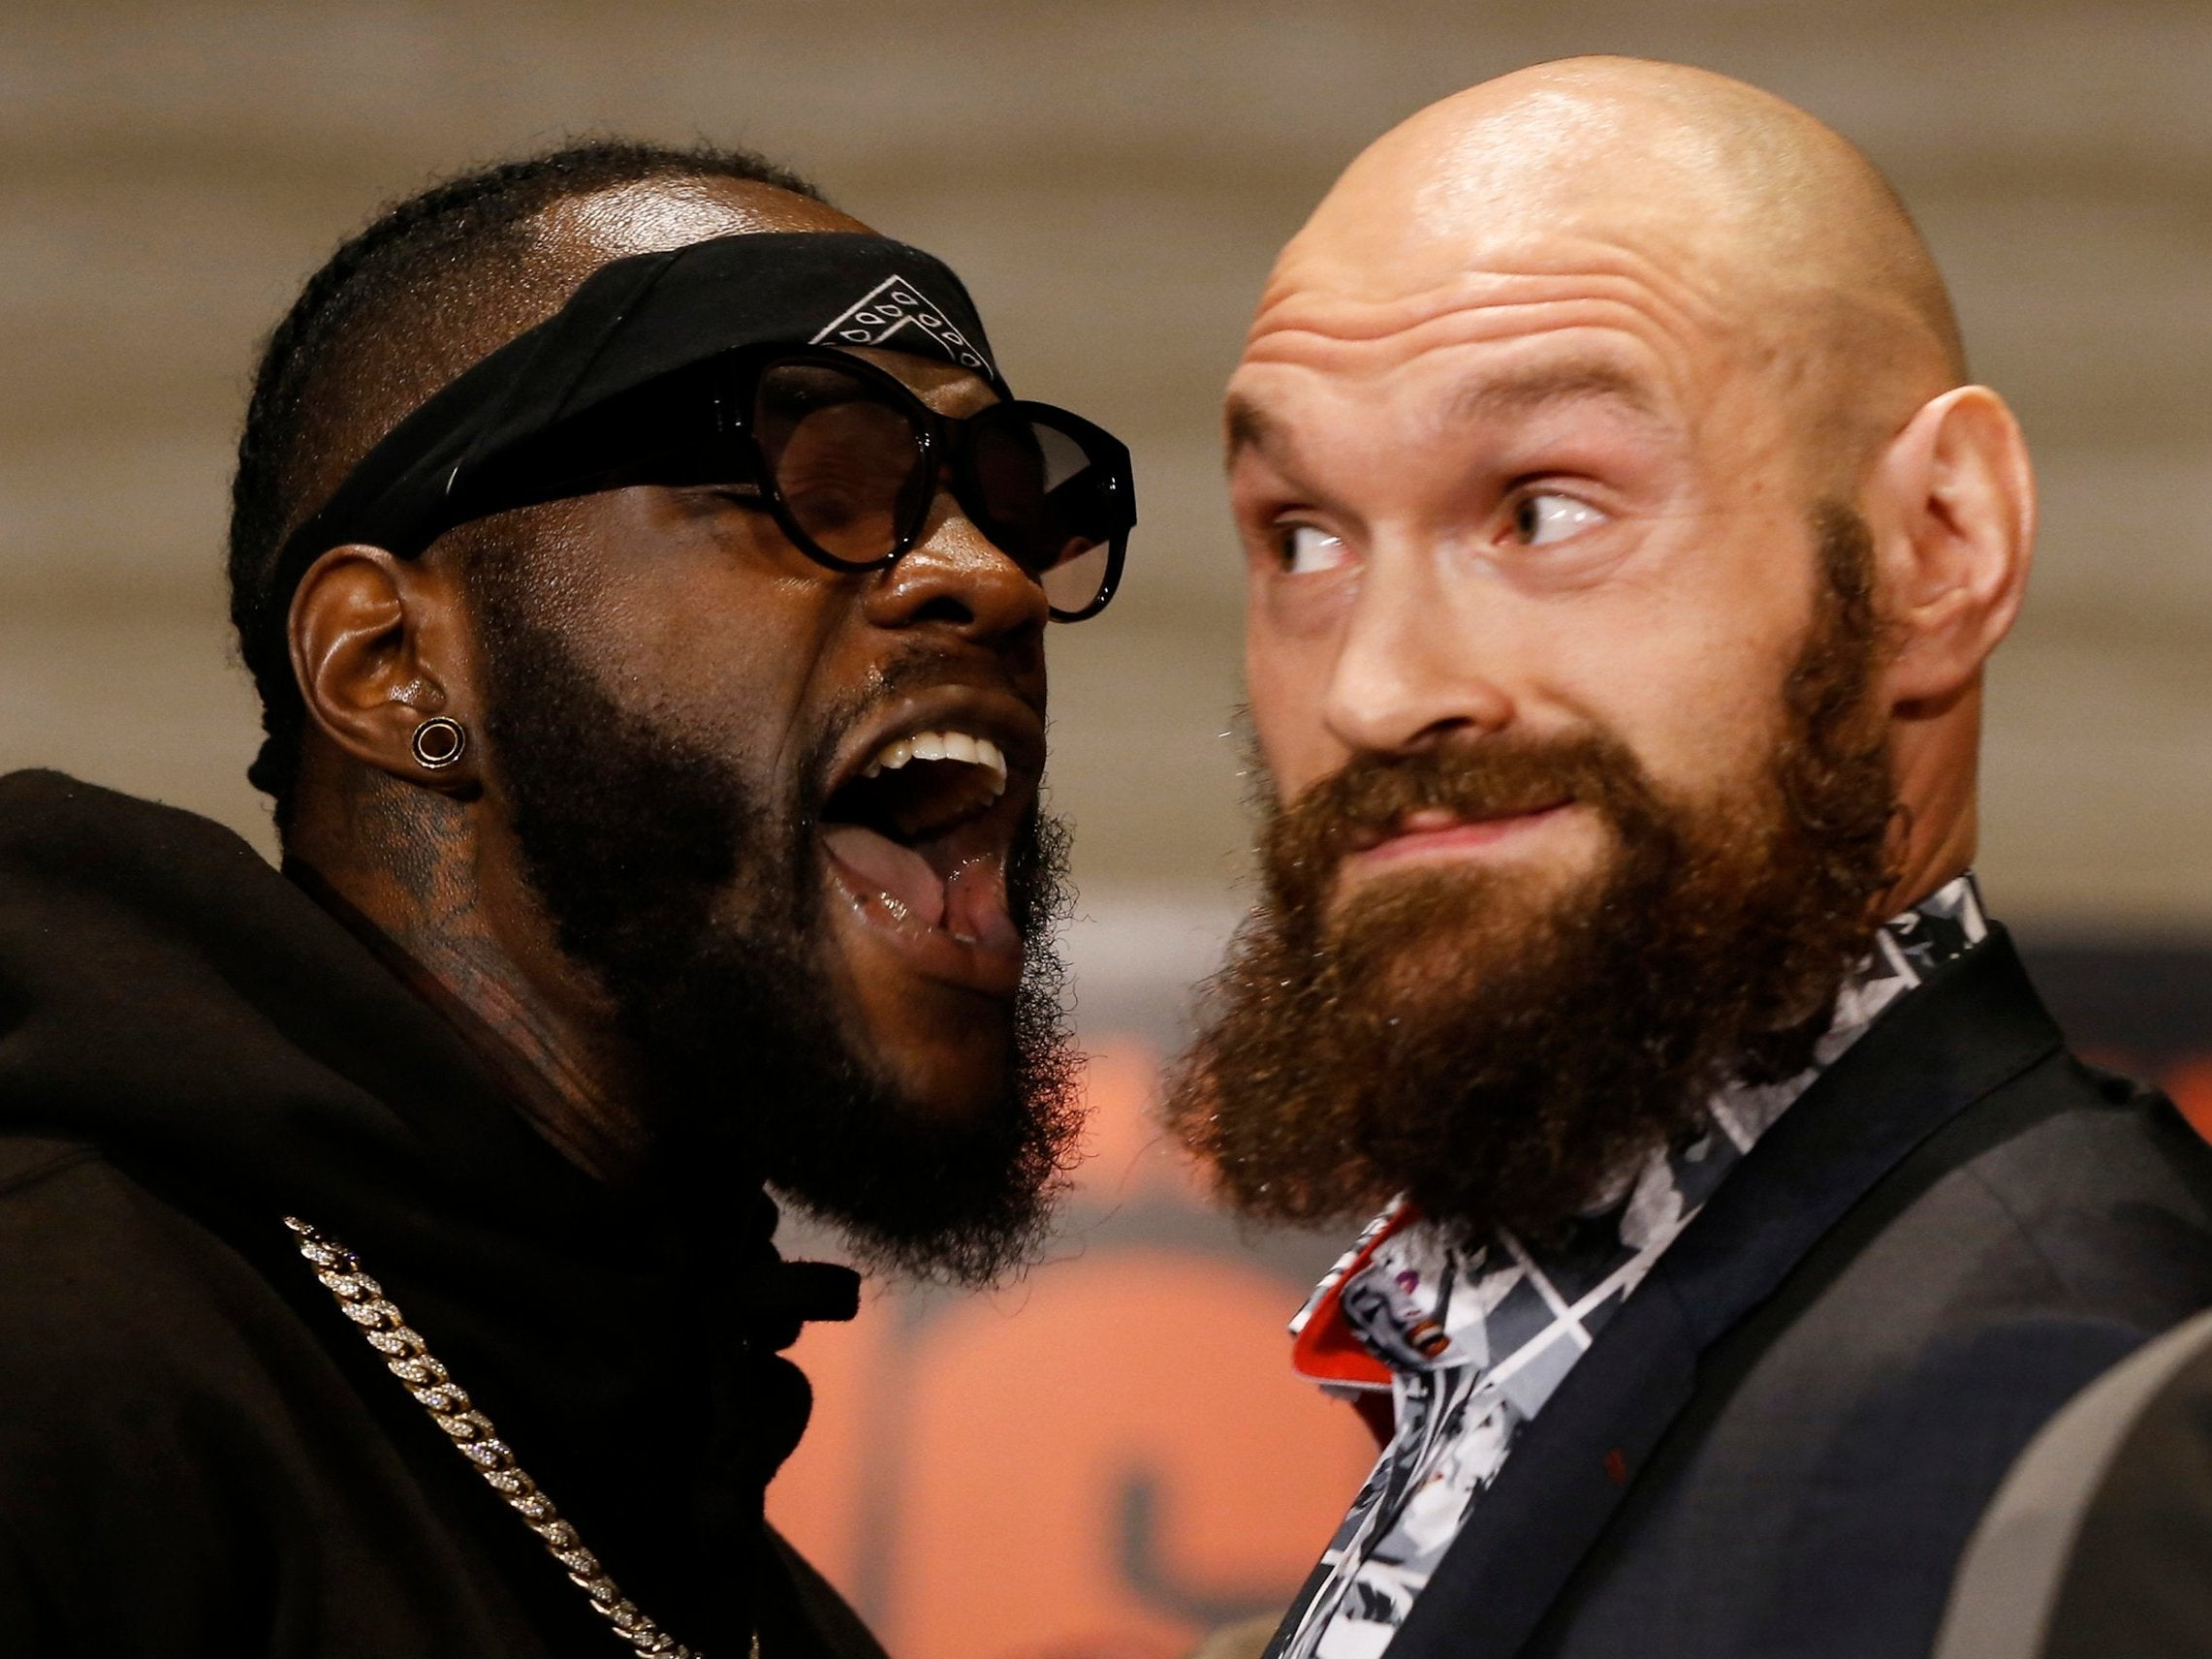 Tyson Fury vs Deontay Wilder fight prediction: What will happen in WBC title clash on Saturday night        Shape    Created with Sketch.                                                                                                        Every single one of Tyson Fury's professional fights        Shape    Created with Sketch.                                                                                                        KO, points or draw? Expert predictions for Fury vs Wilder